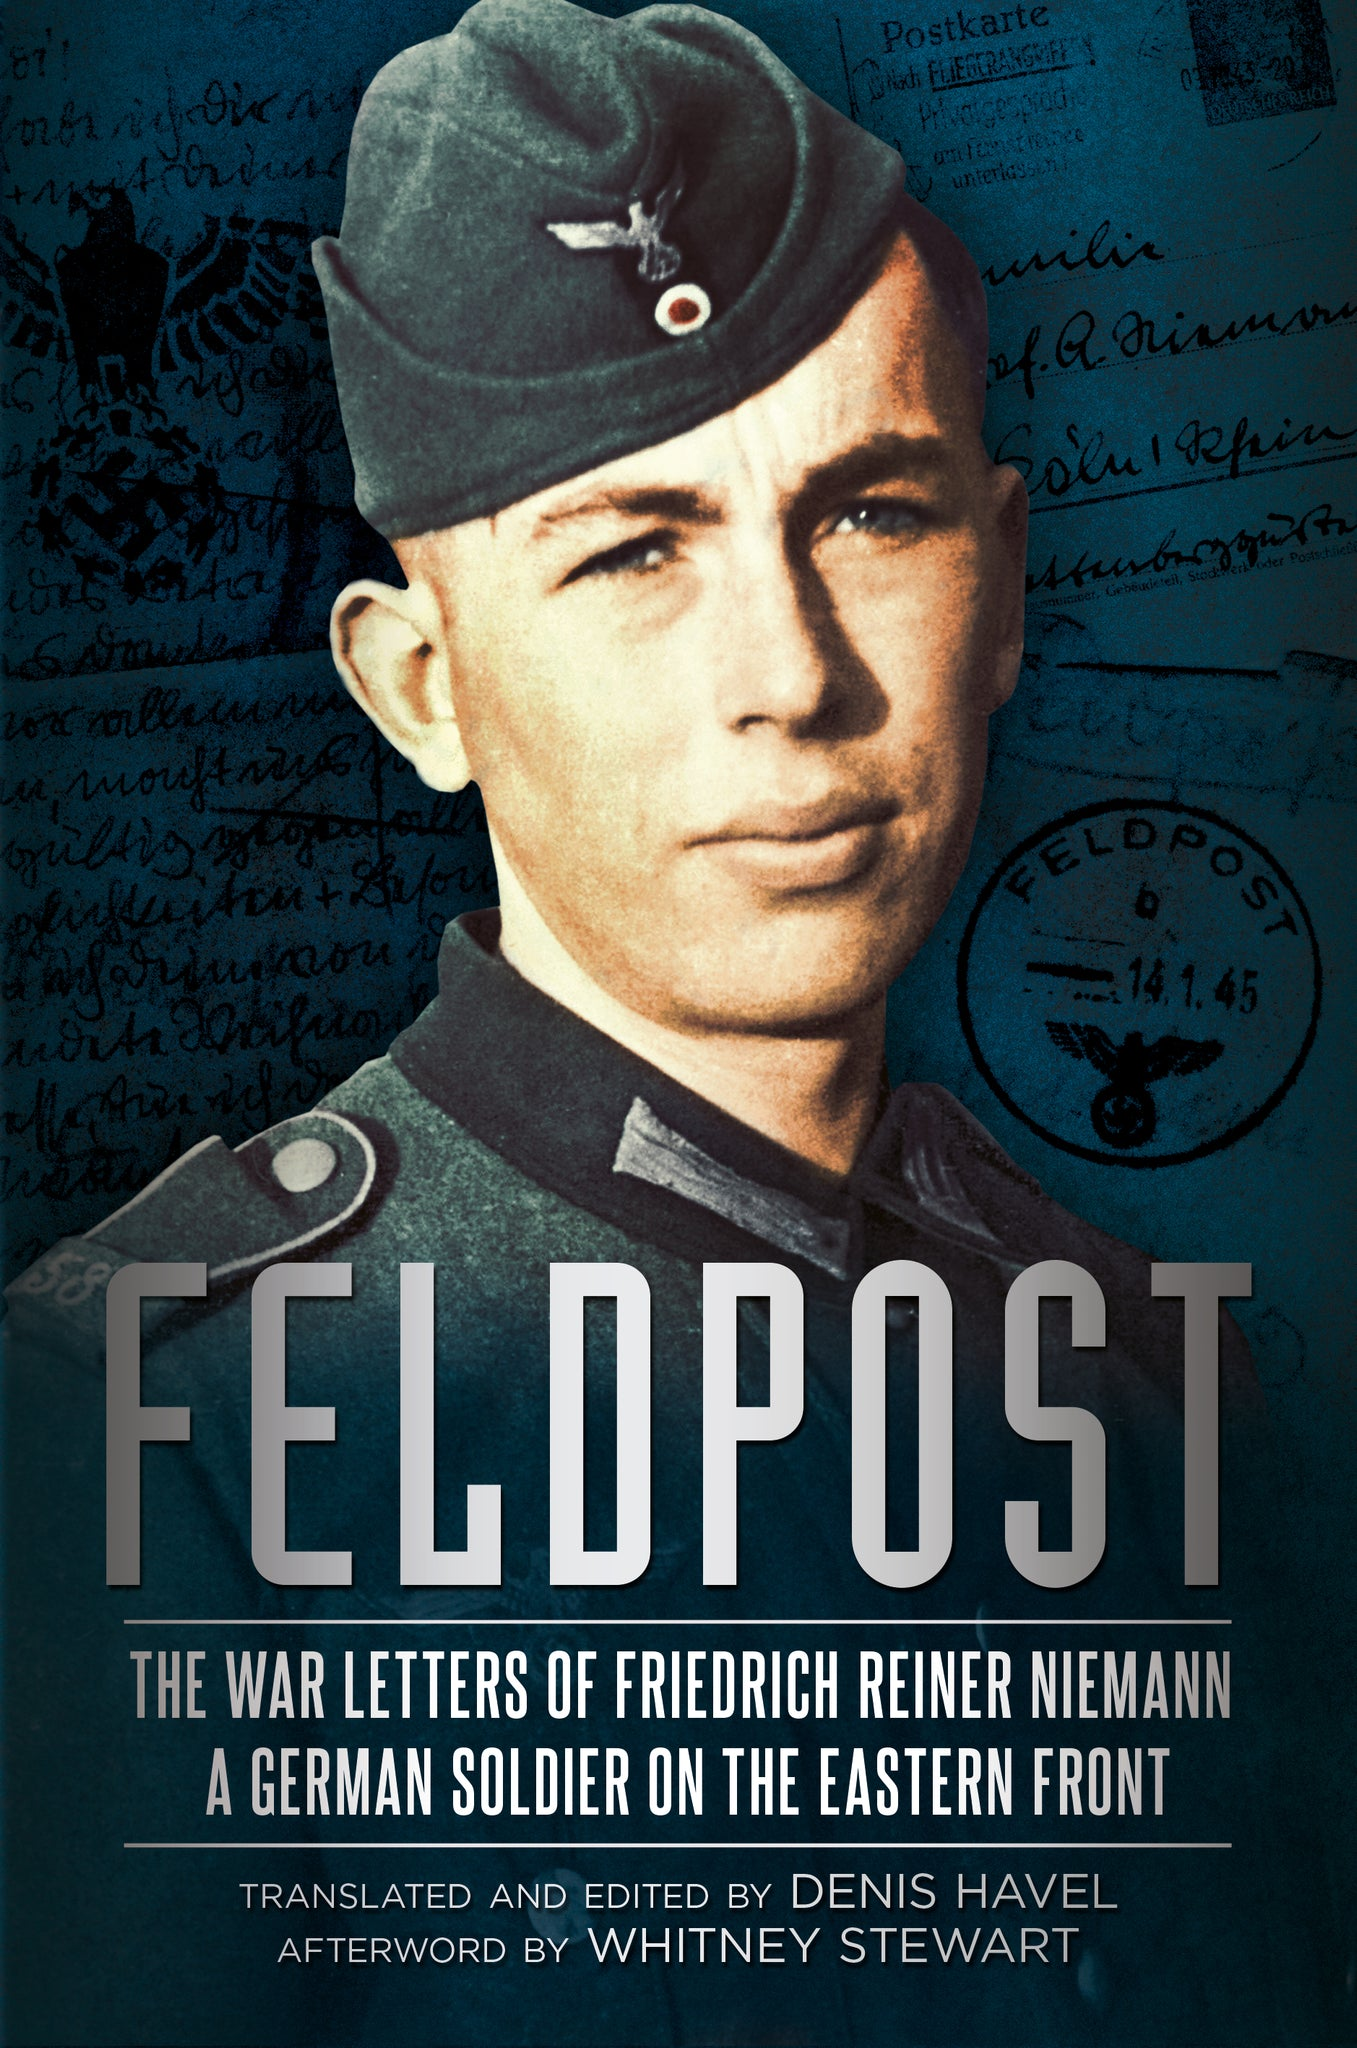 Feldpost: The War Letters of Friedrich Reiner Niemann - A German Soldier on the Eastern Front